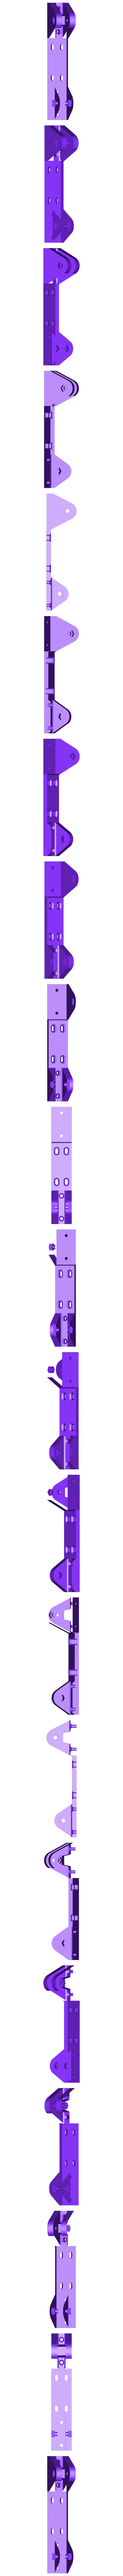 hinge_7mm_base_fixing.stl Download free STL file Special folding hinges for case-rap (custom version) • 3D printable model, dasaki